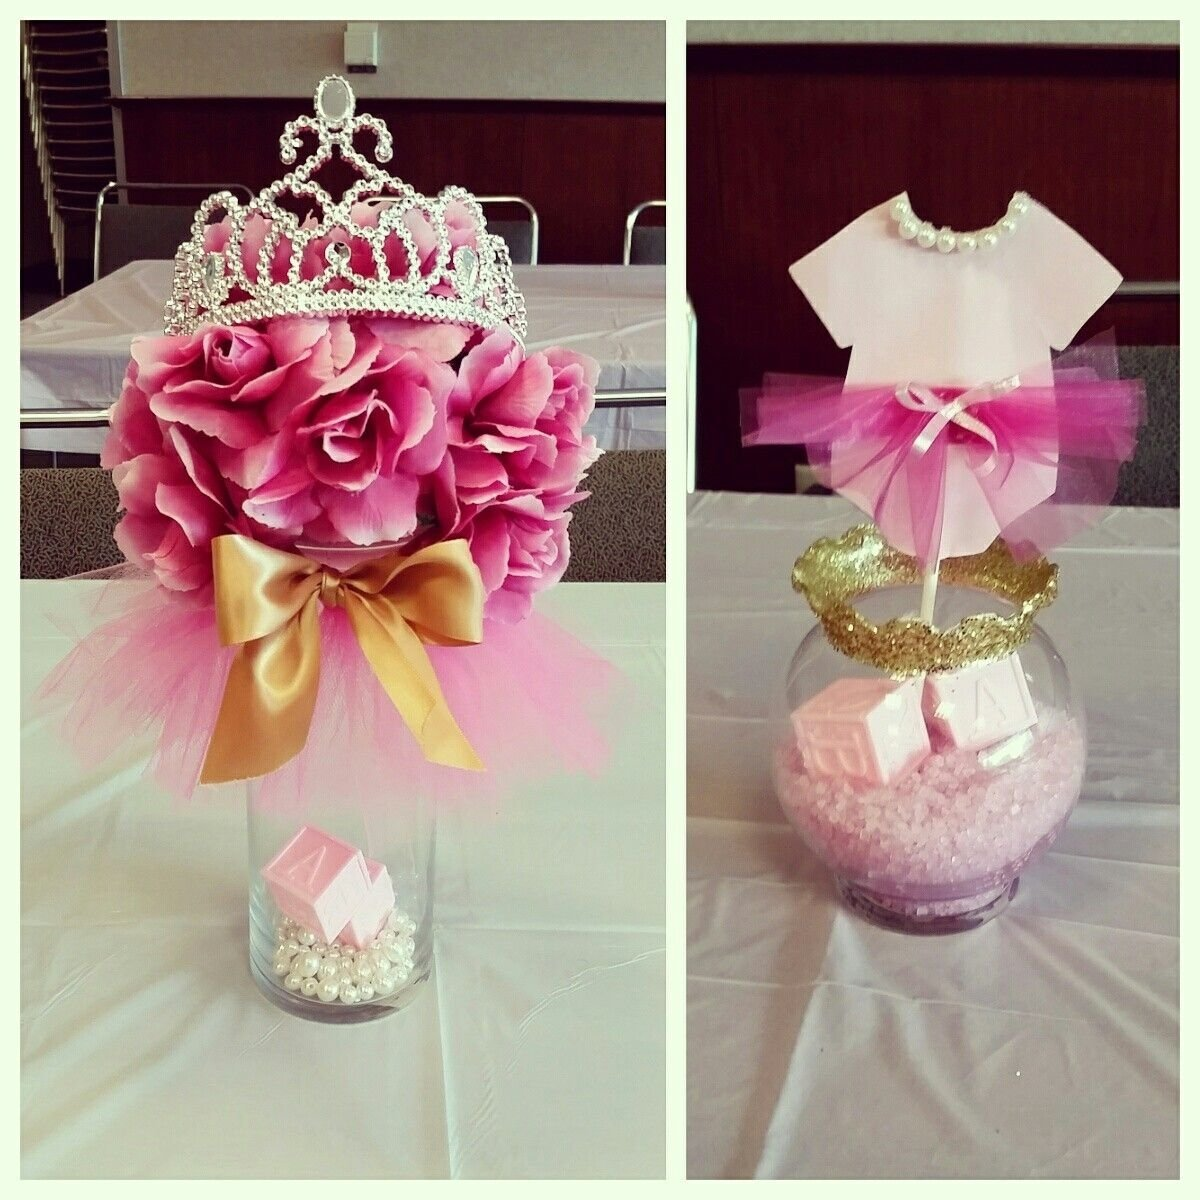 10 Attractive Girl Baby Shower Decoration Ideas tutus tiaras baby shower centerpieces pinkandgold my diy 2 2020